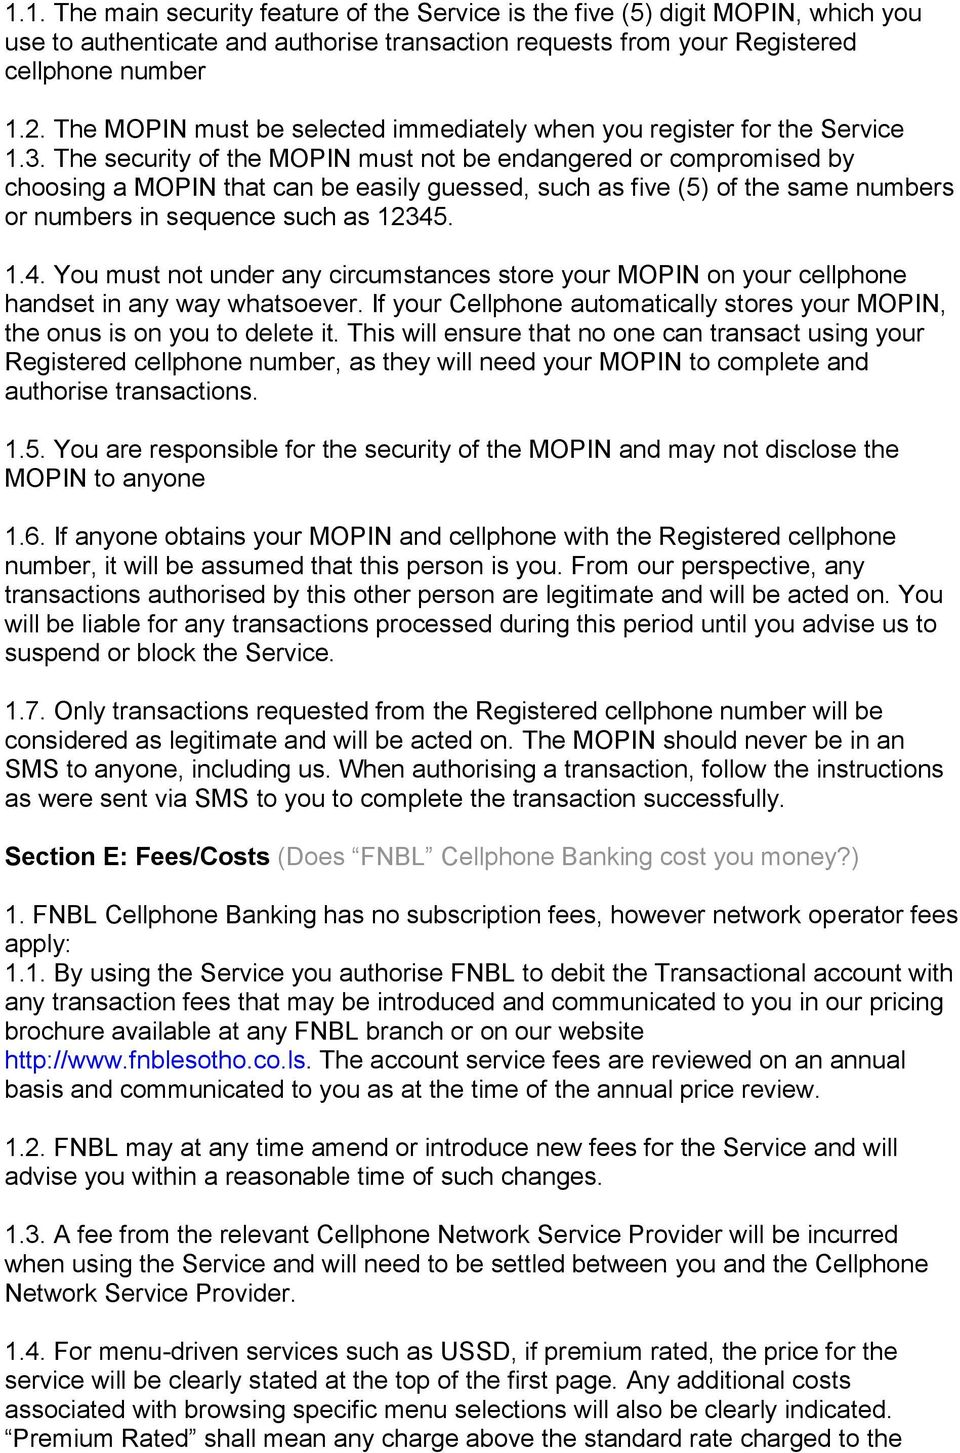 The security of the MOPIN must not be endangered or compromised by choosing a MOPIN that can be easily guessed, such as five (5) of the same numbers or numbers in sequence such as 12345